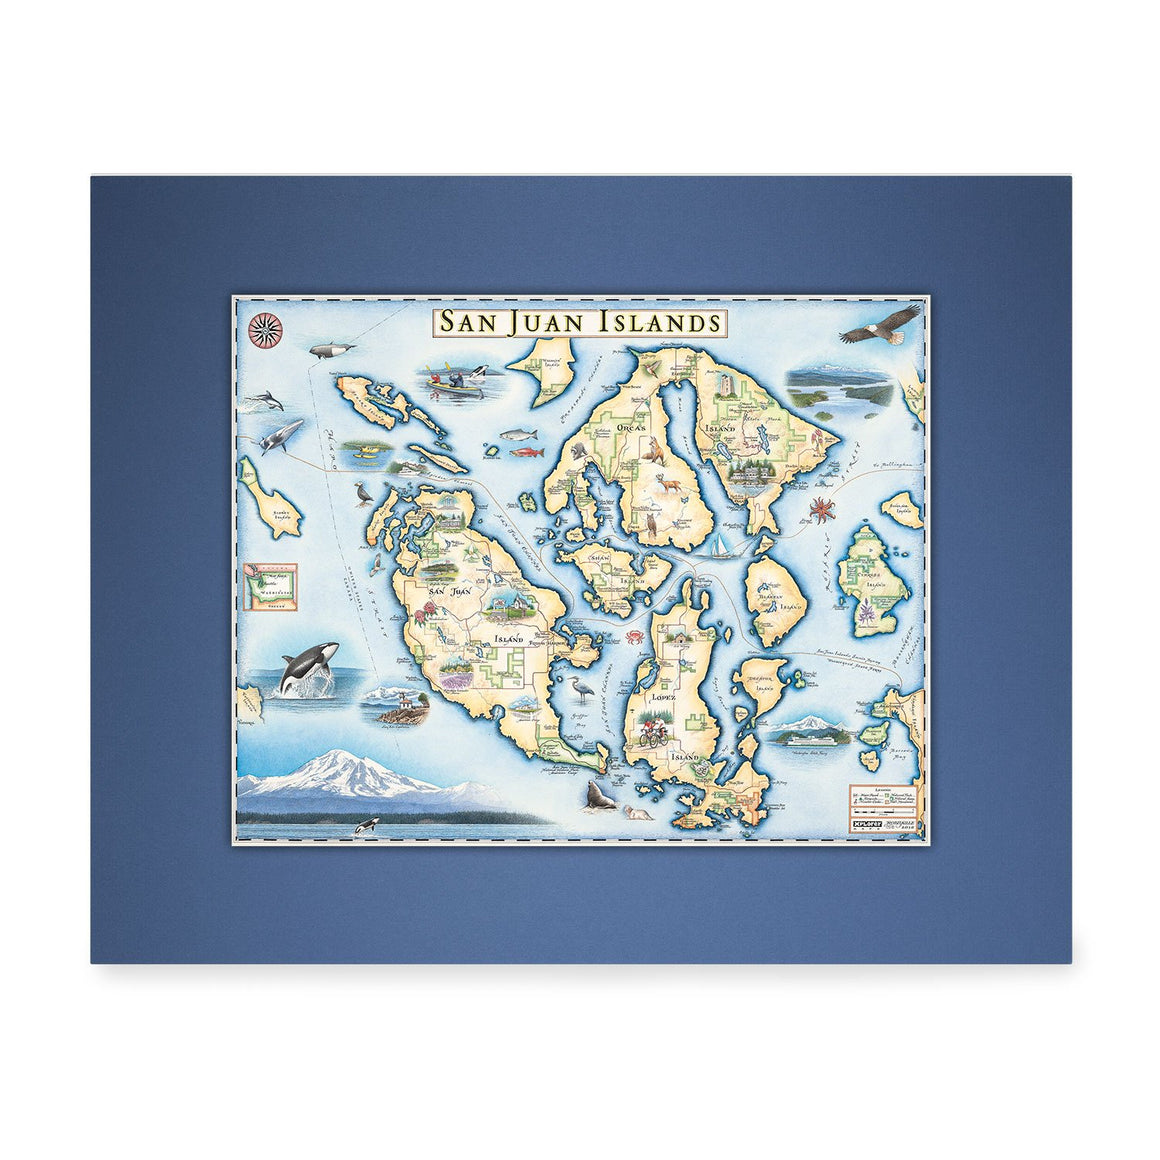 San Juan Islands Mini-Map